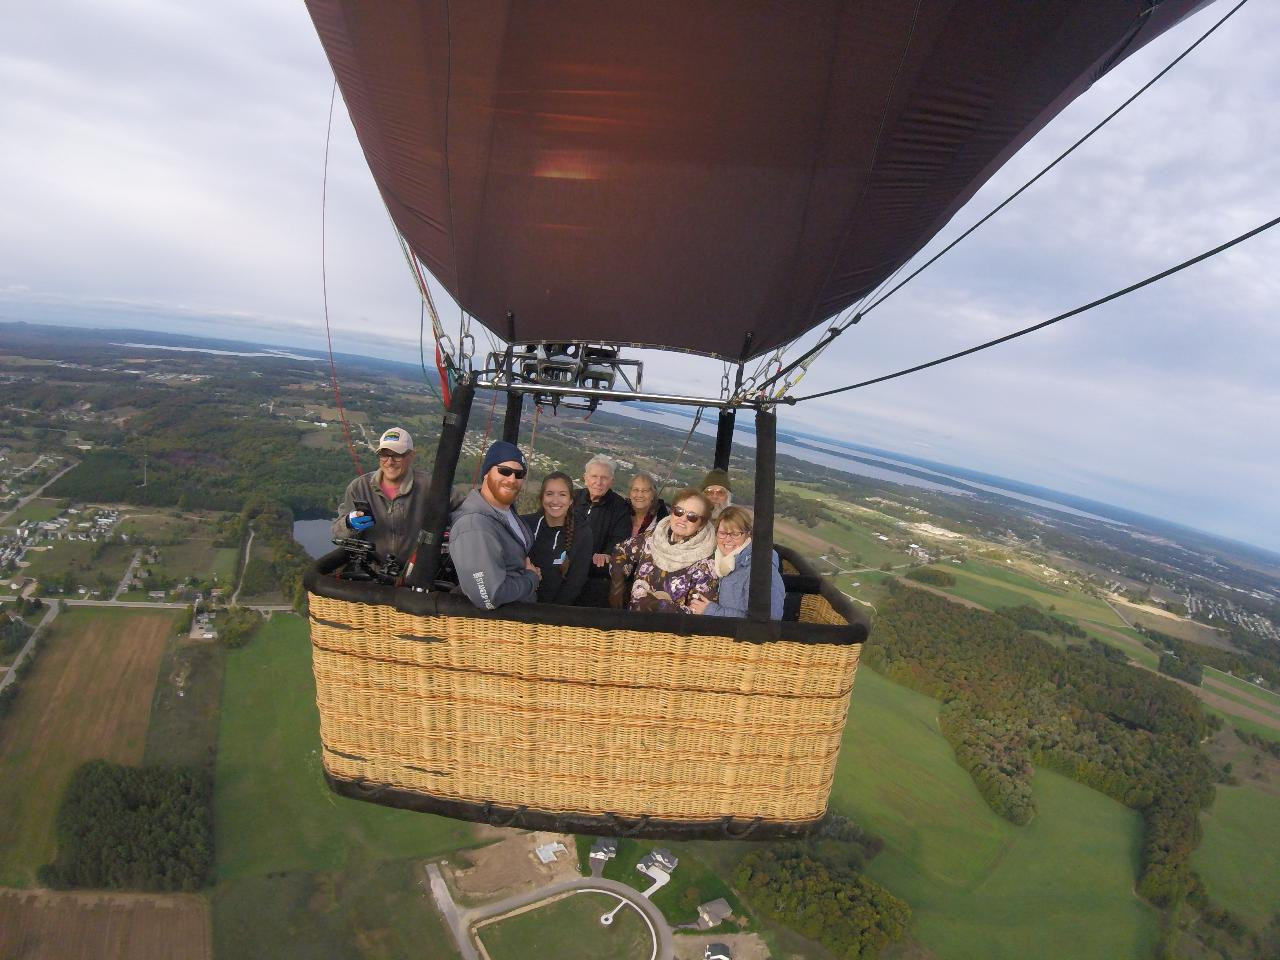 Weekday PM Shared Flight in Traverse City